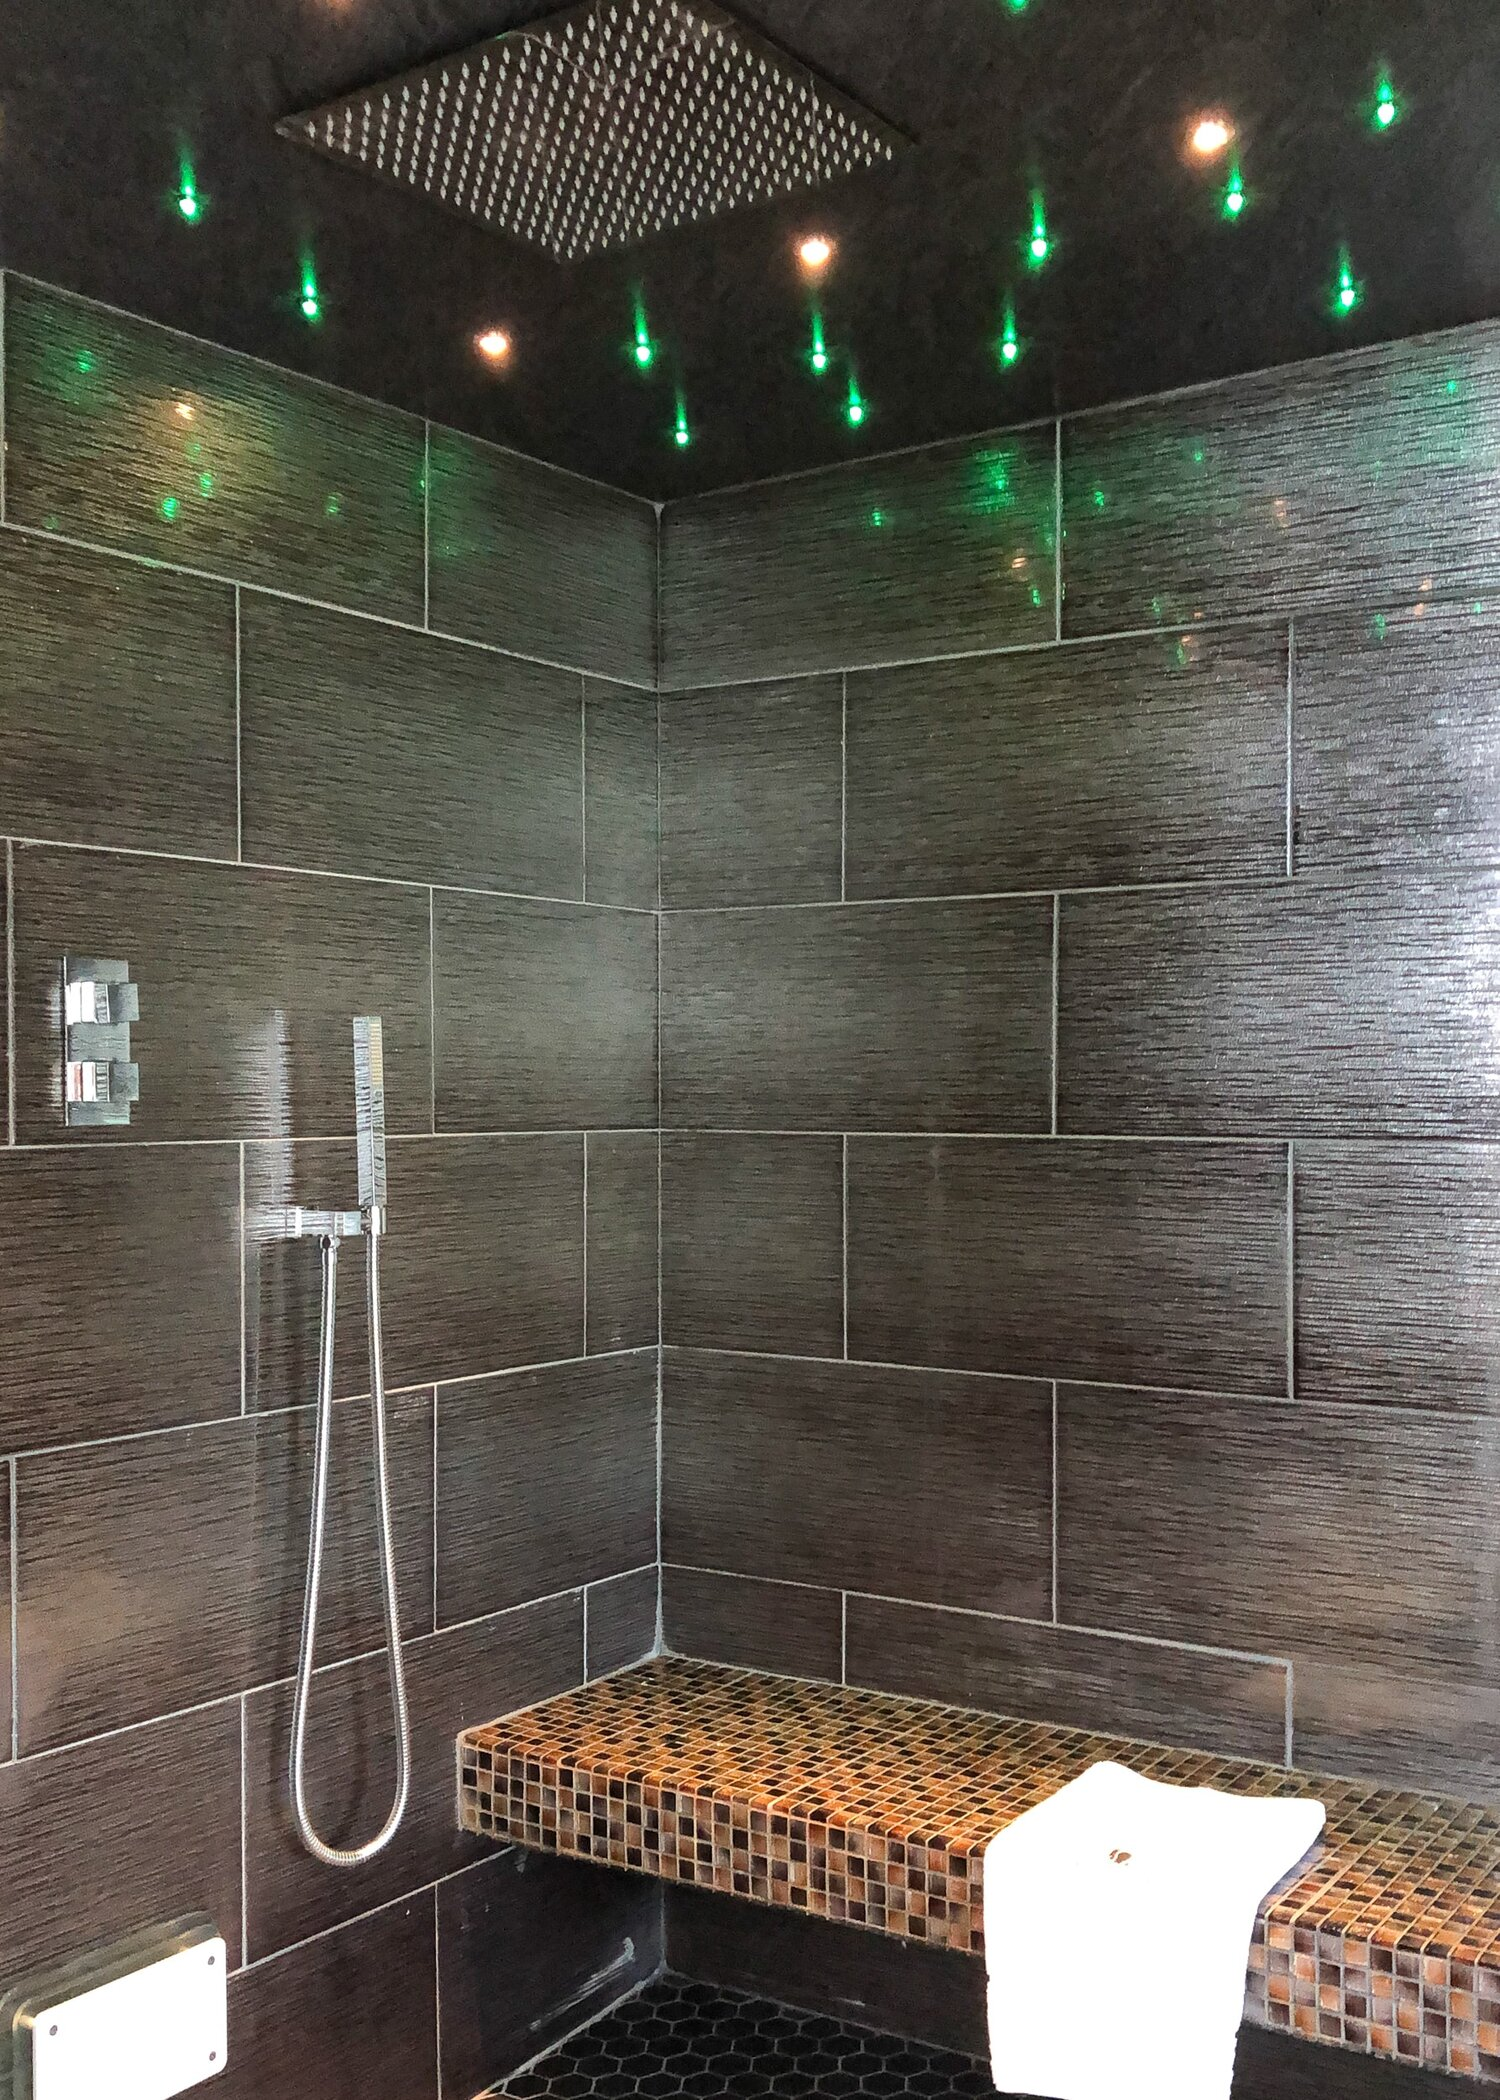 Steam and shower room with star lighting